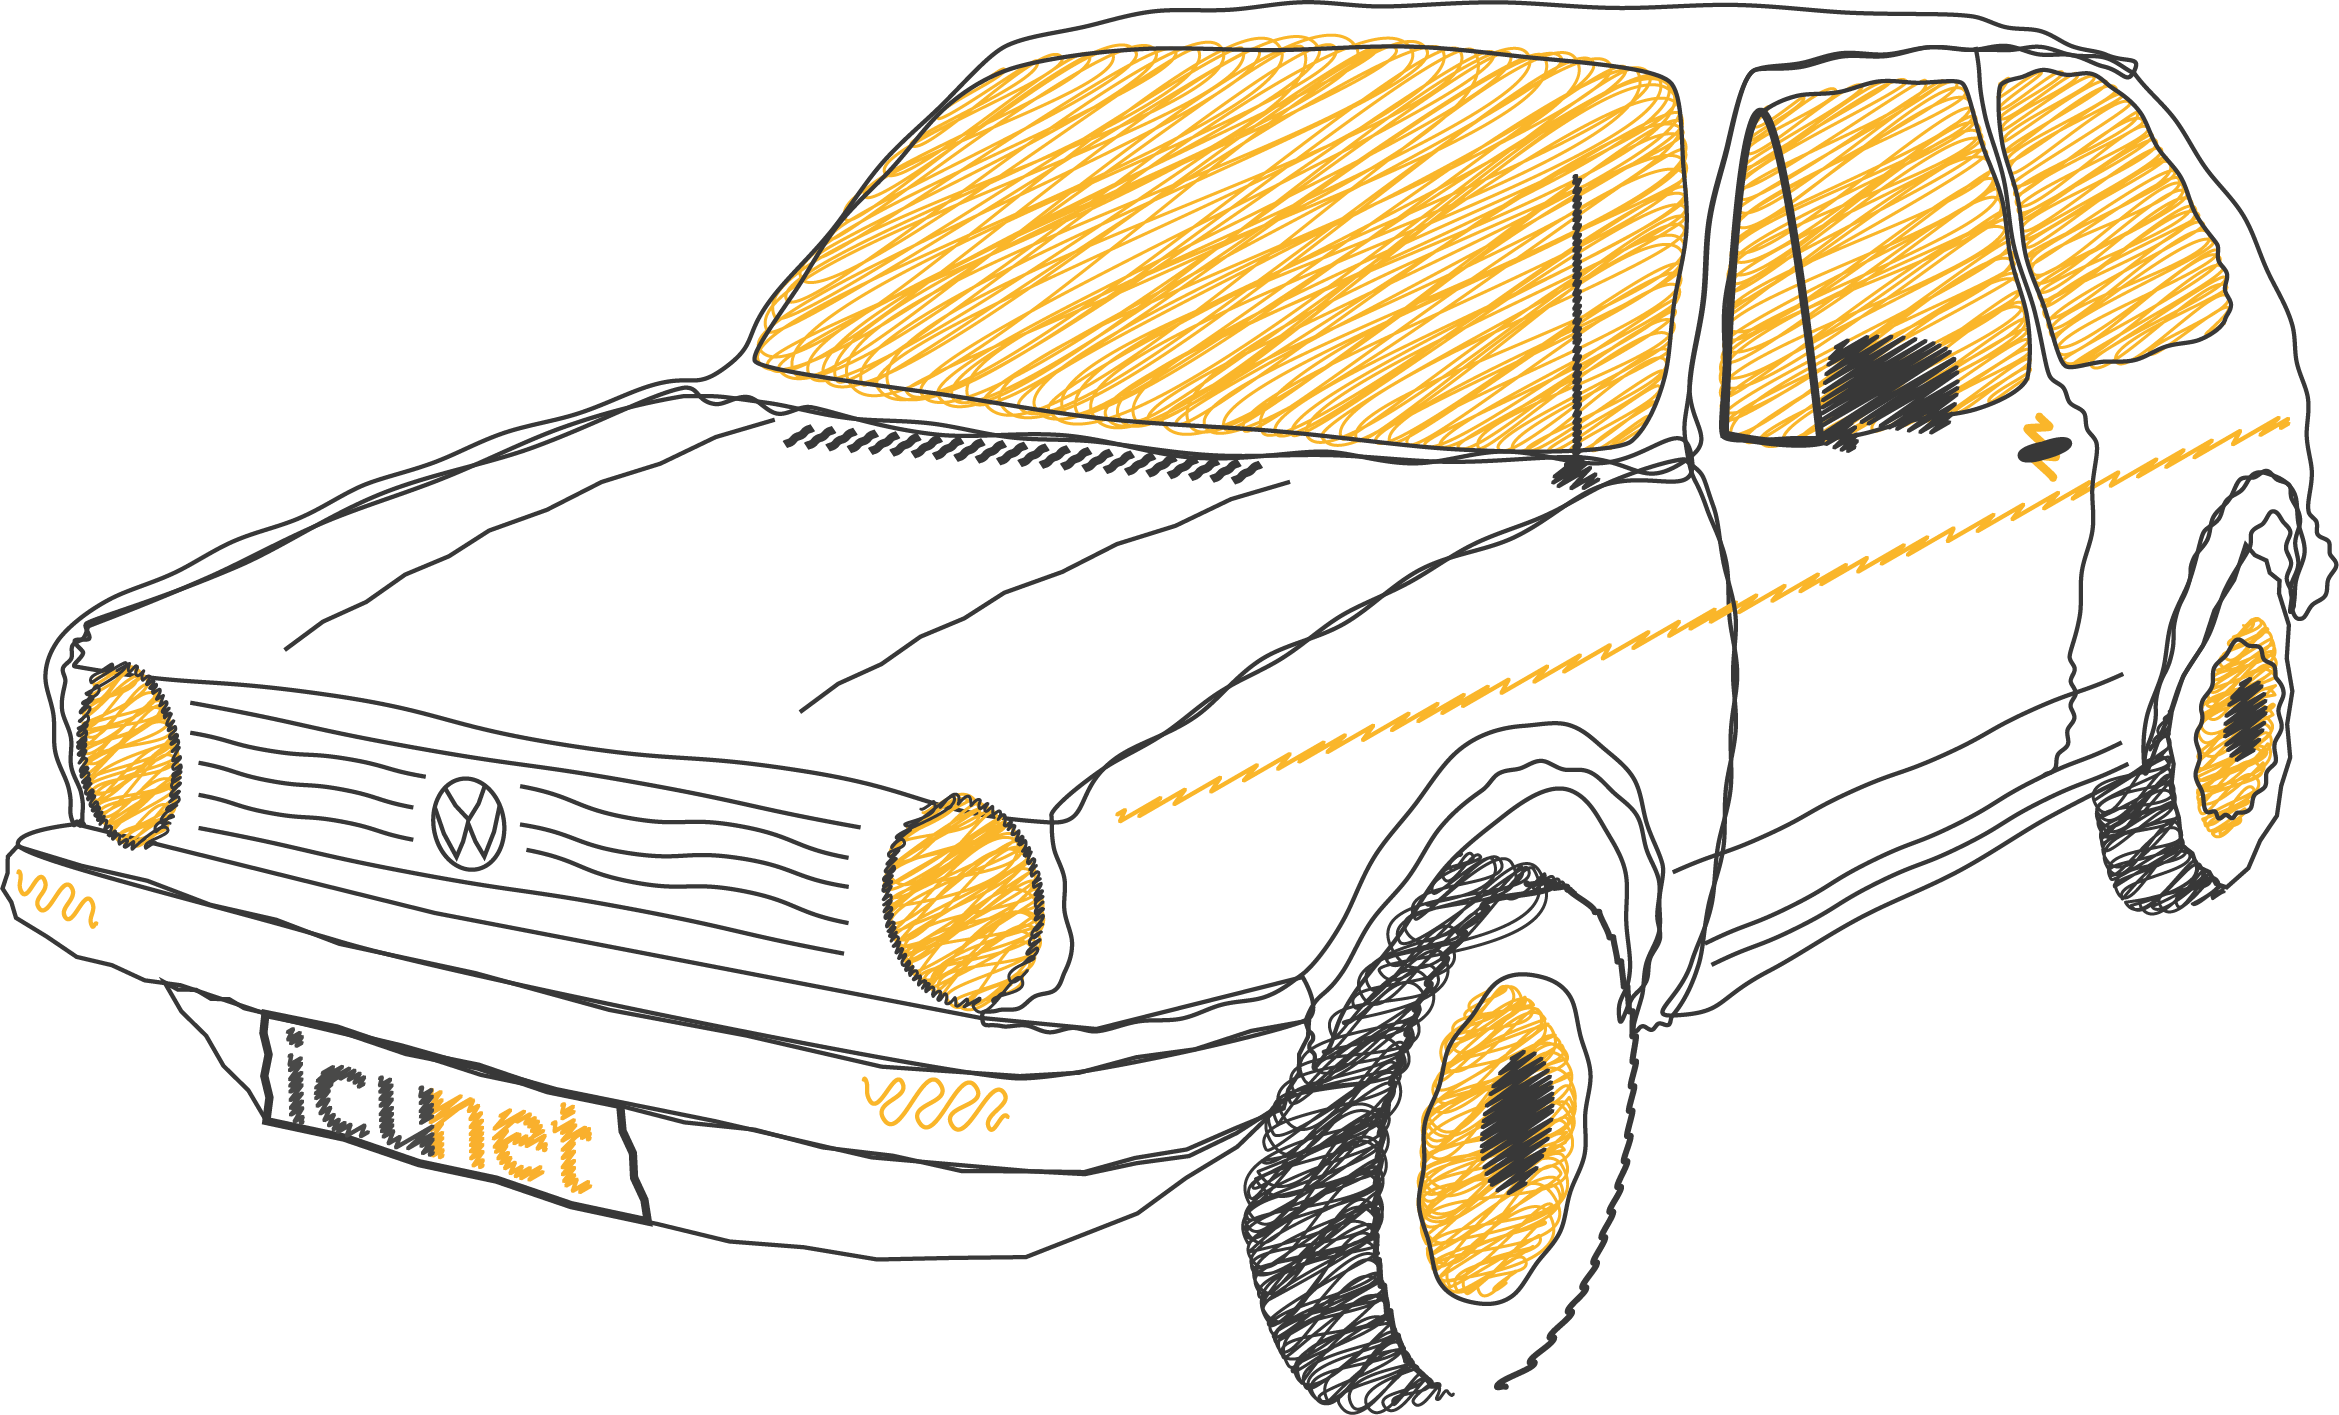 Pencil drawing of a car with yellow windows.